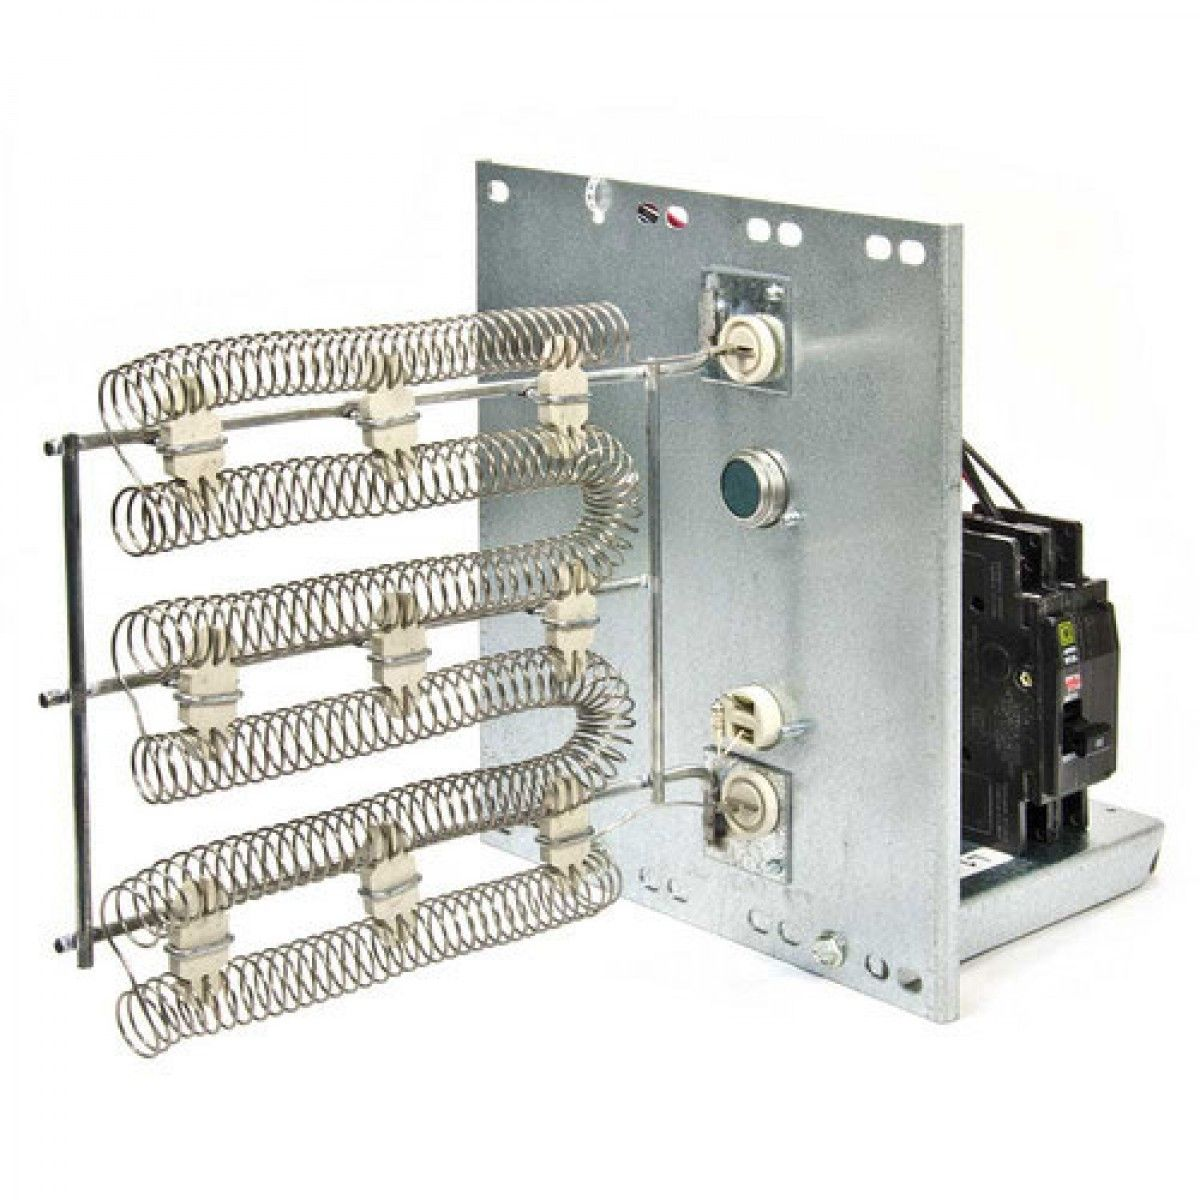 15 Kw Goodman Hkp 15 Electric Heat Kits For Packaged